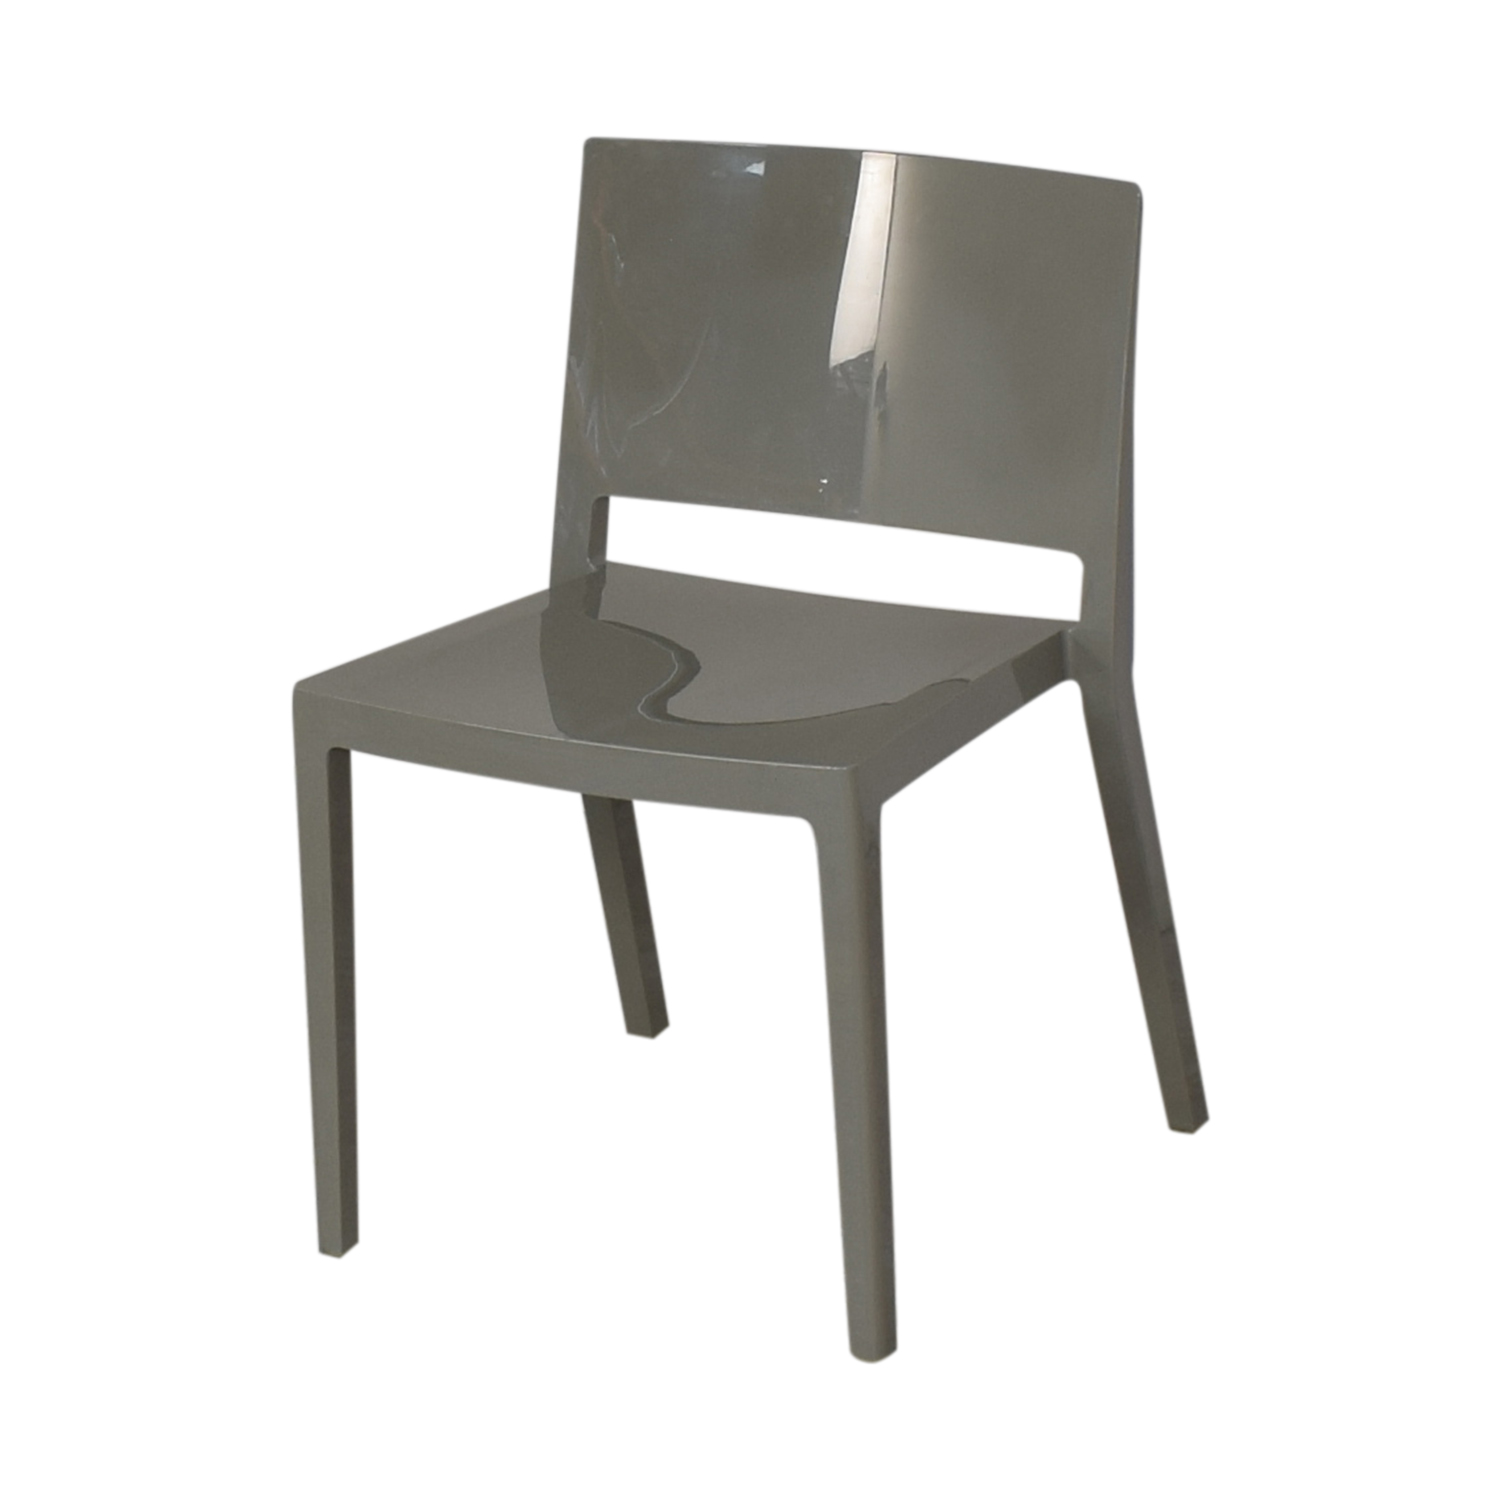 Kartell Kartell Lizz Chairs Chairs